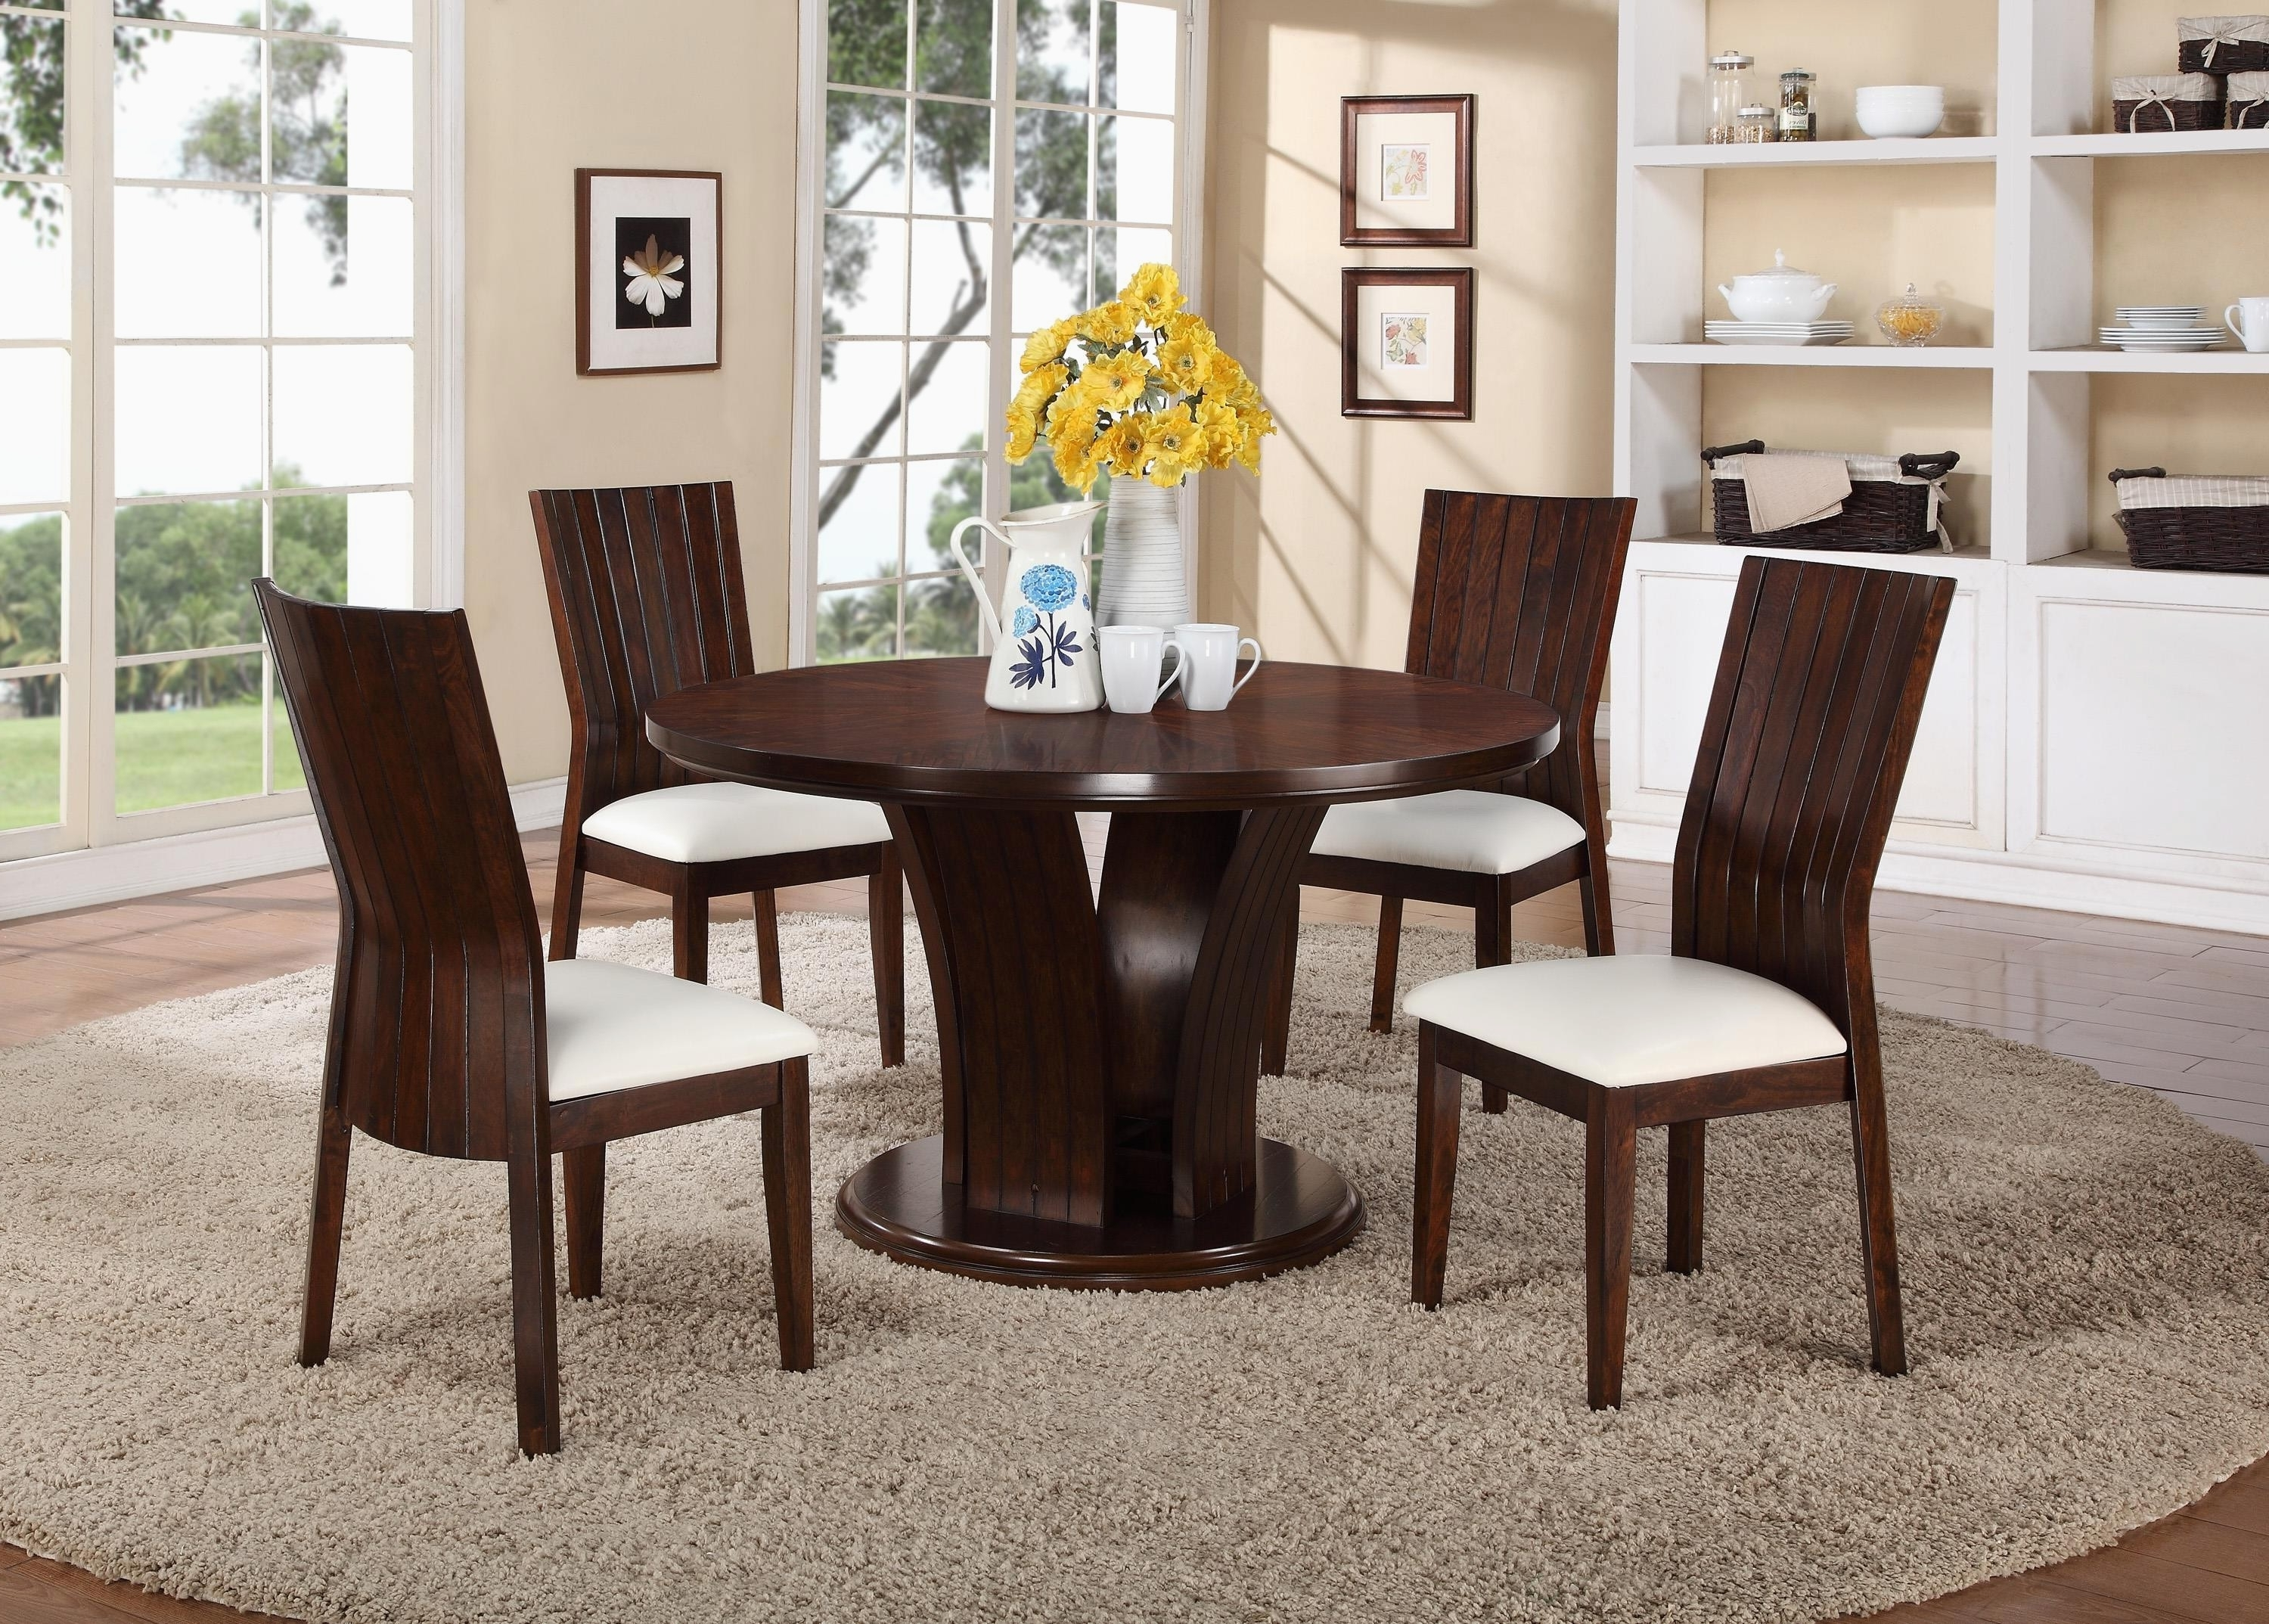 Best And Newest Wooden Dining Room Table New Square Dining Tables For Sale Petite With Wood Dining Tables (Gallery 16 of 25)